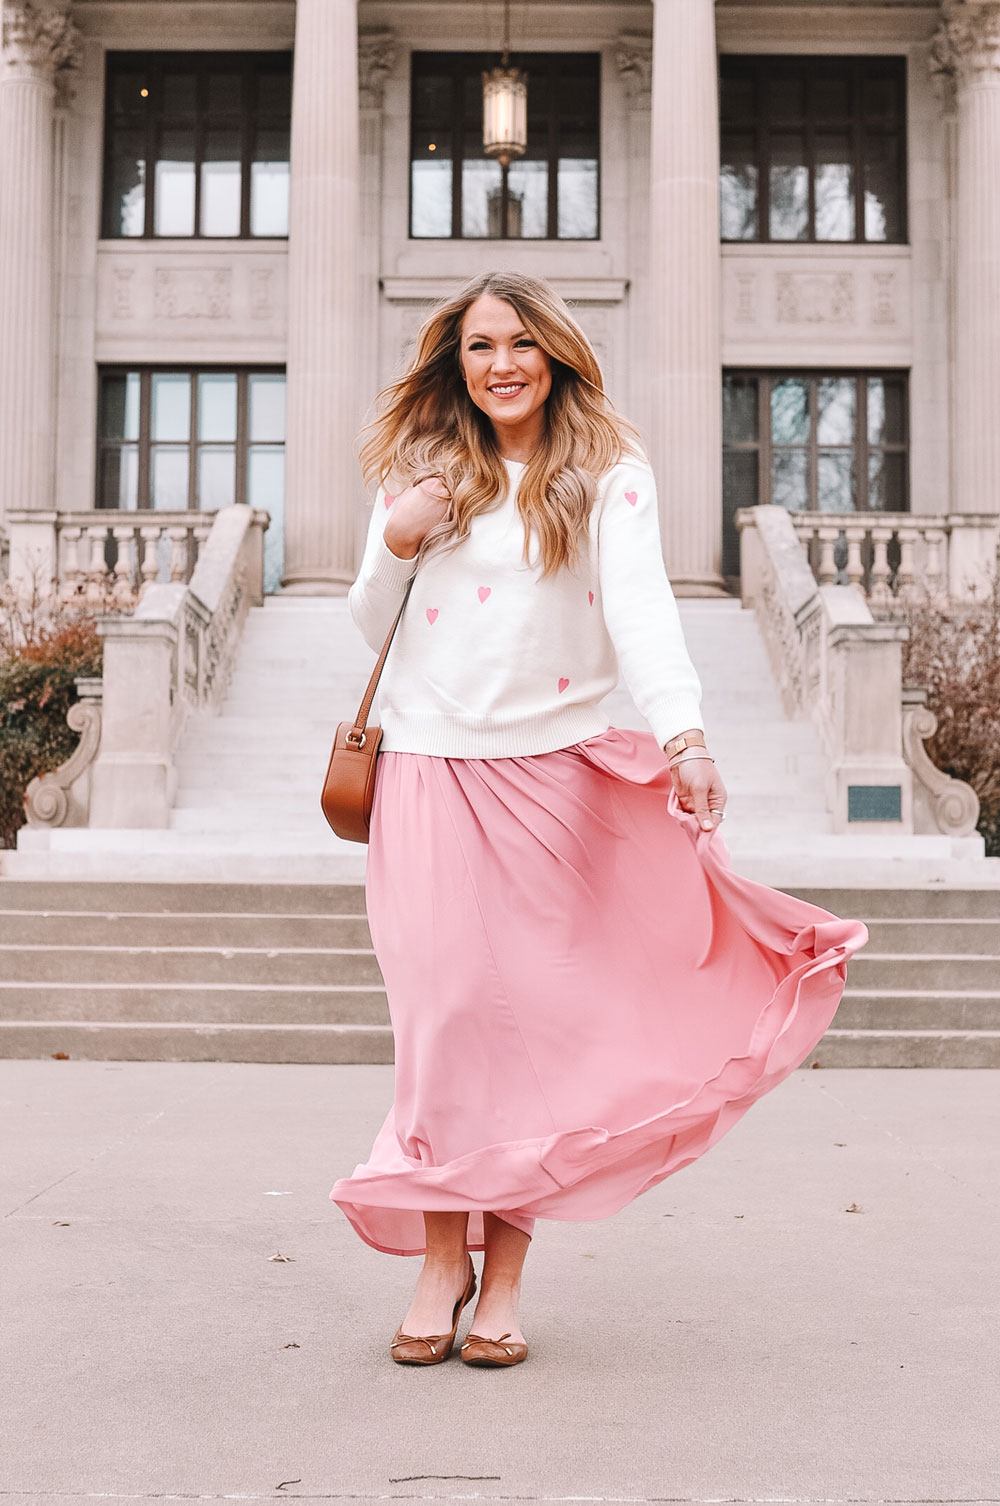 Blogger Amanda's OK Shares ideas on what to wear for Valentine's Day